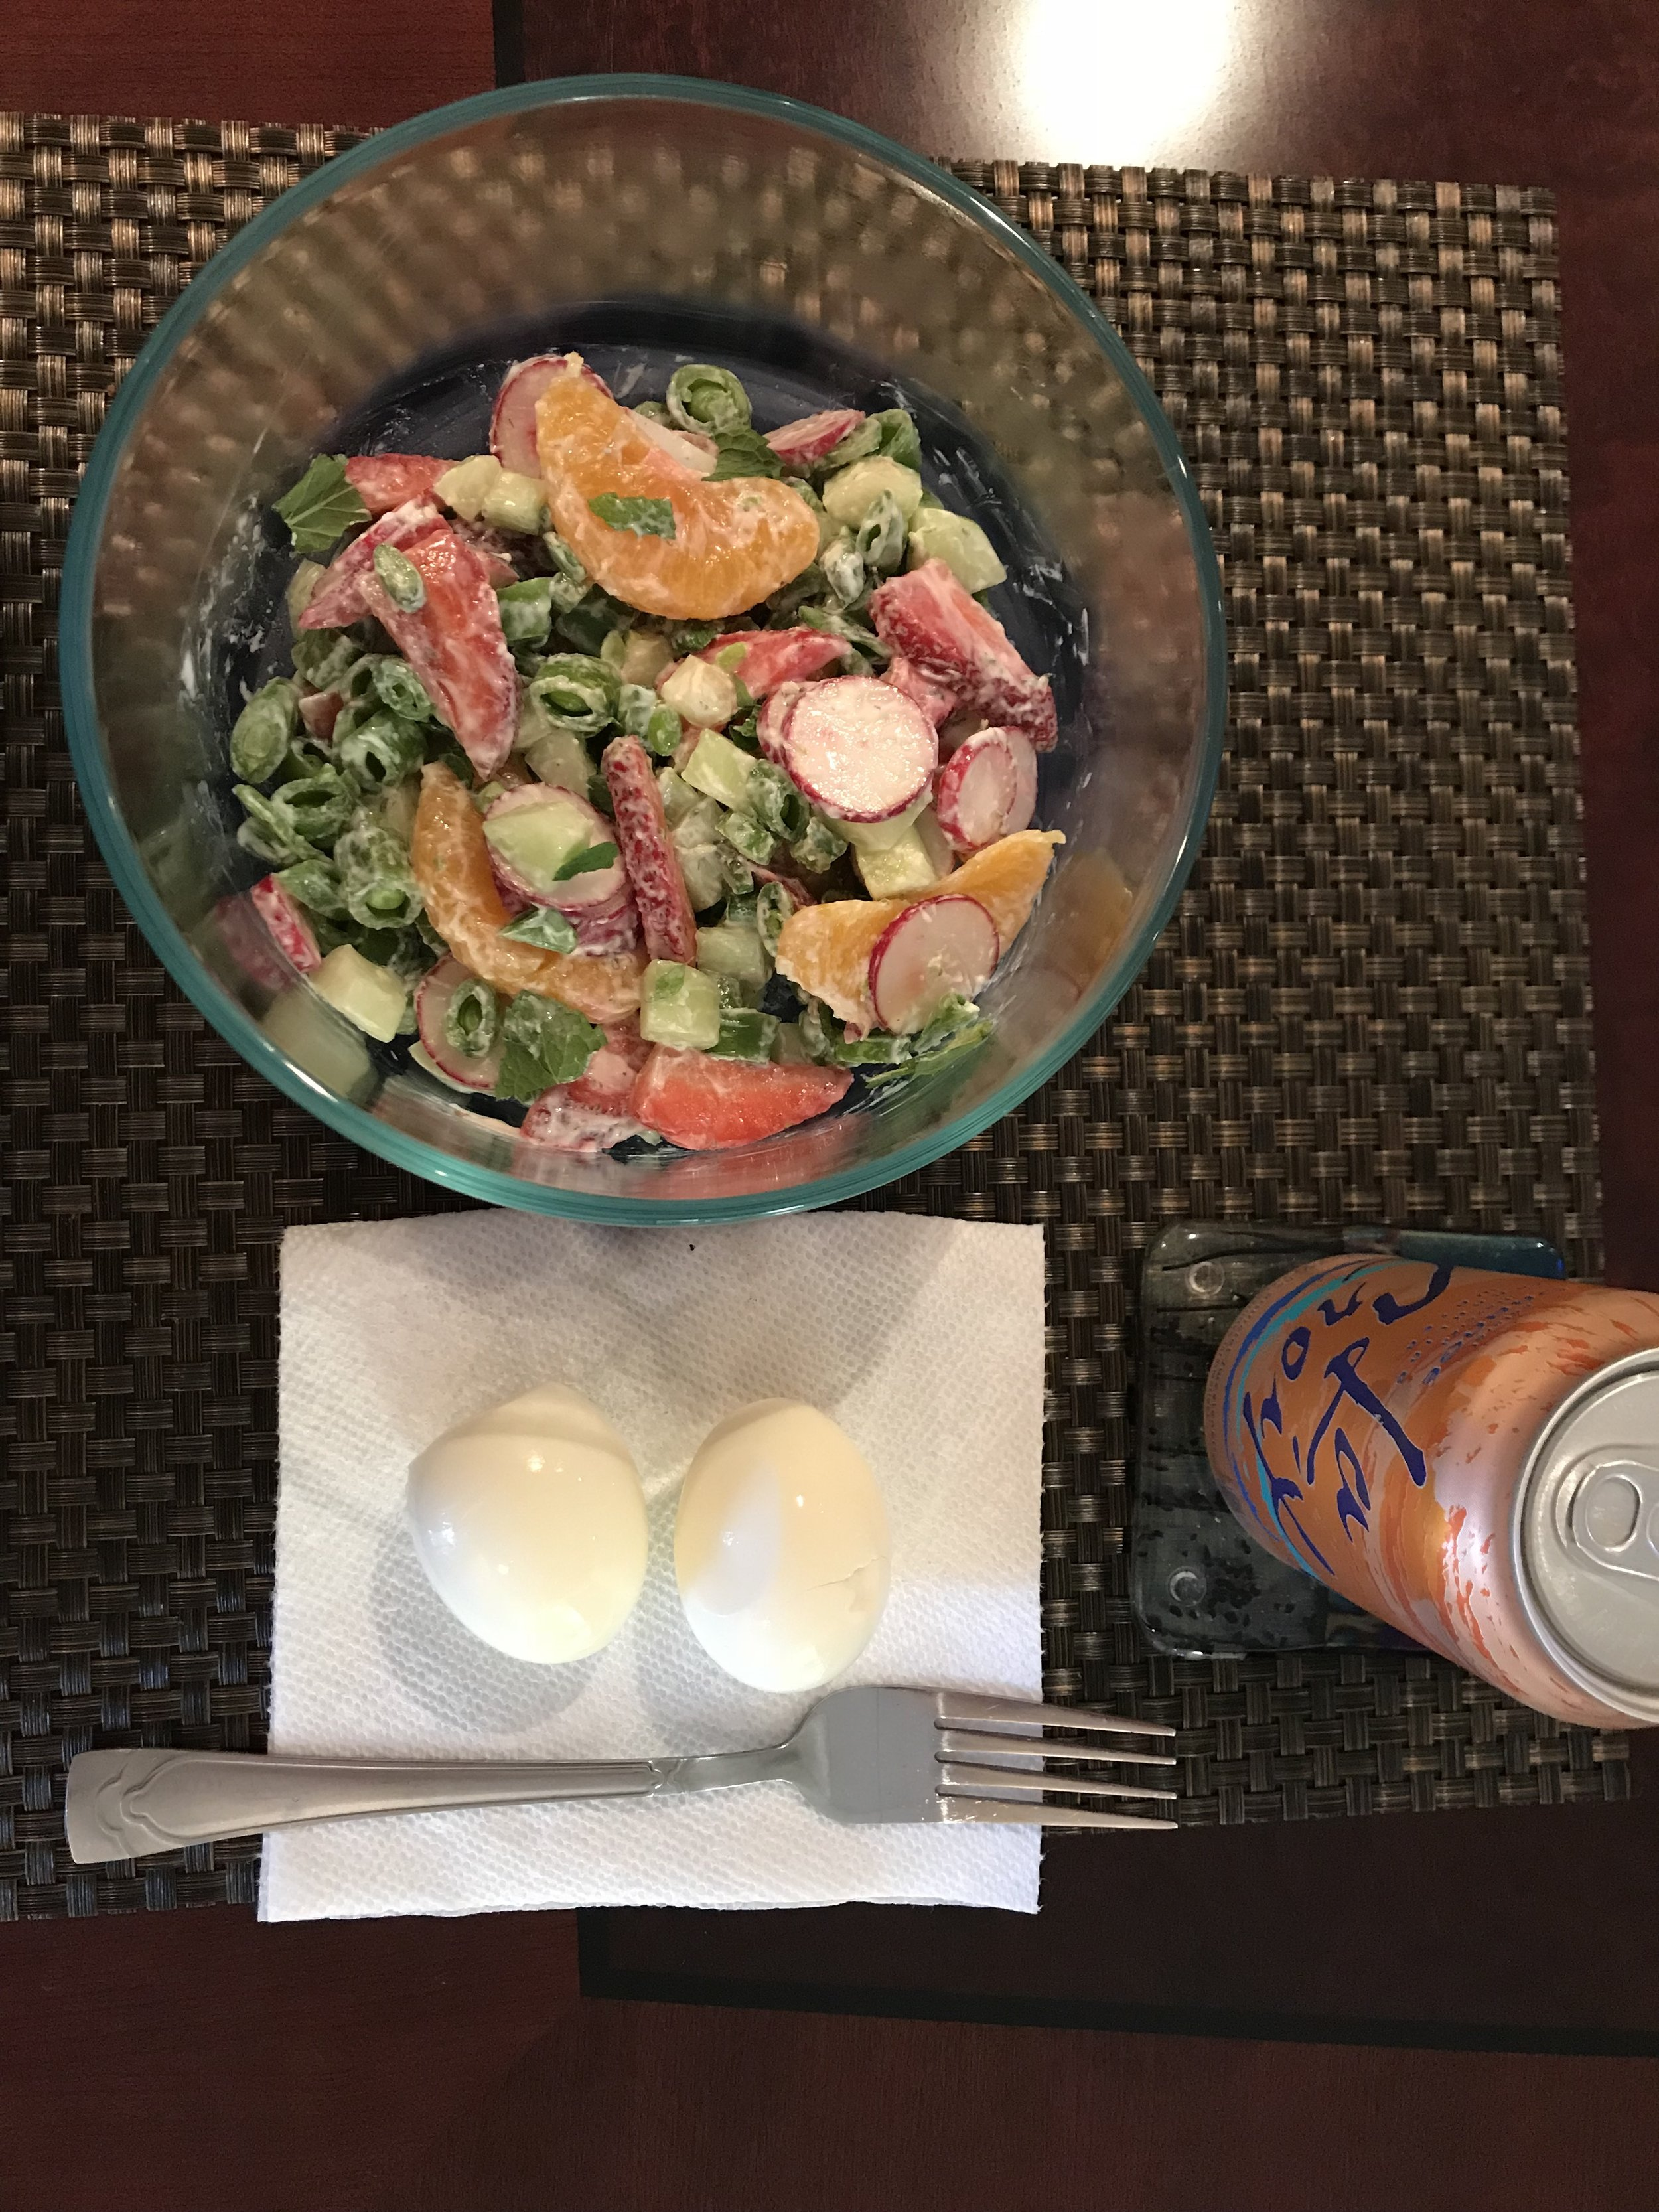 LUNCH - Fixate Spring Salad, 2 hard boiled Eggs, and Le Croix.